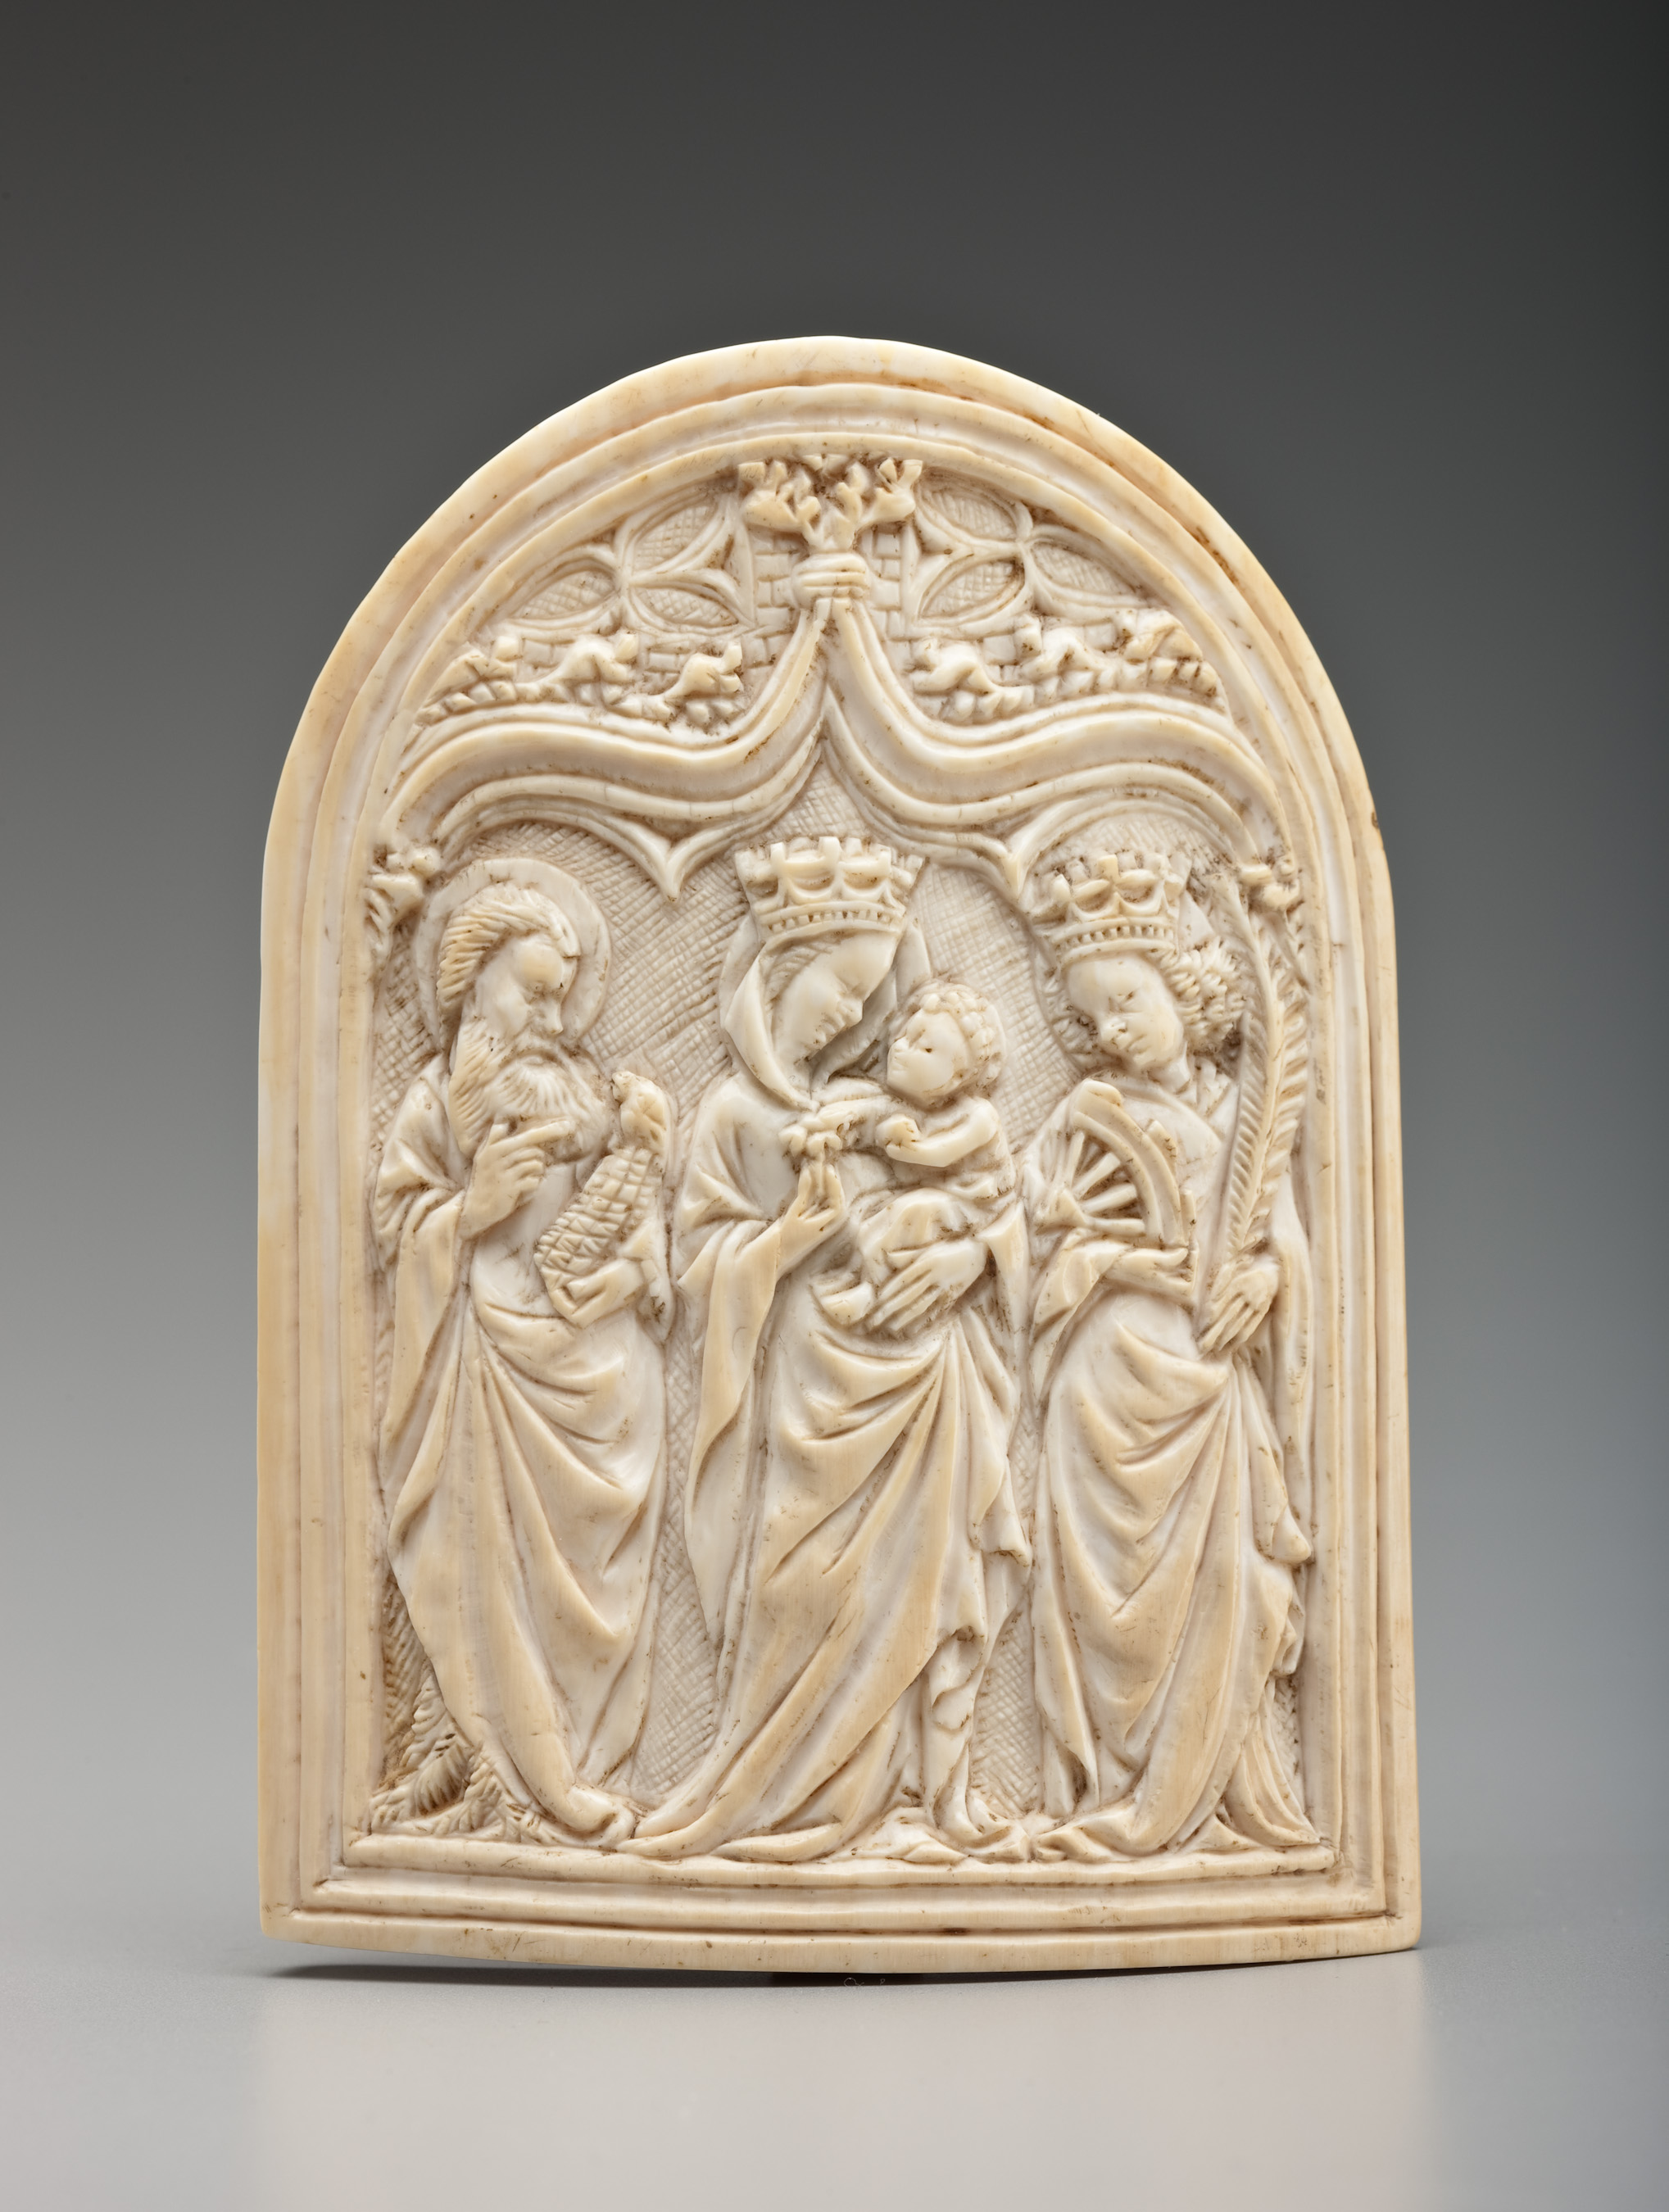 Unidentified Artist (Utrecht), Pax, ca. 1450-75, ivory, 12.1 x 8.9 x 1 cm Detroit Institute of Arts